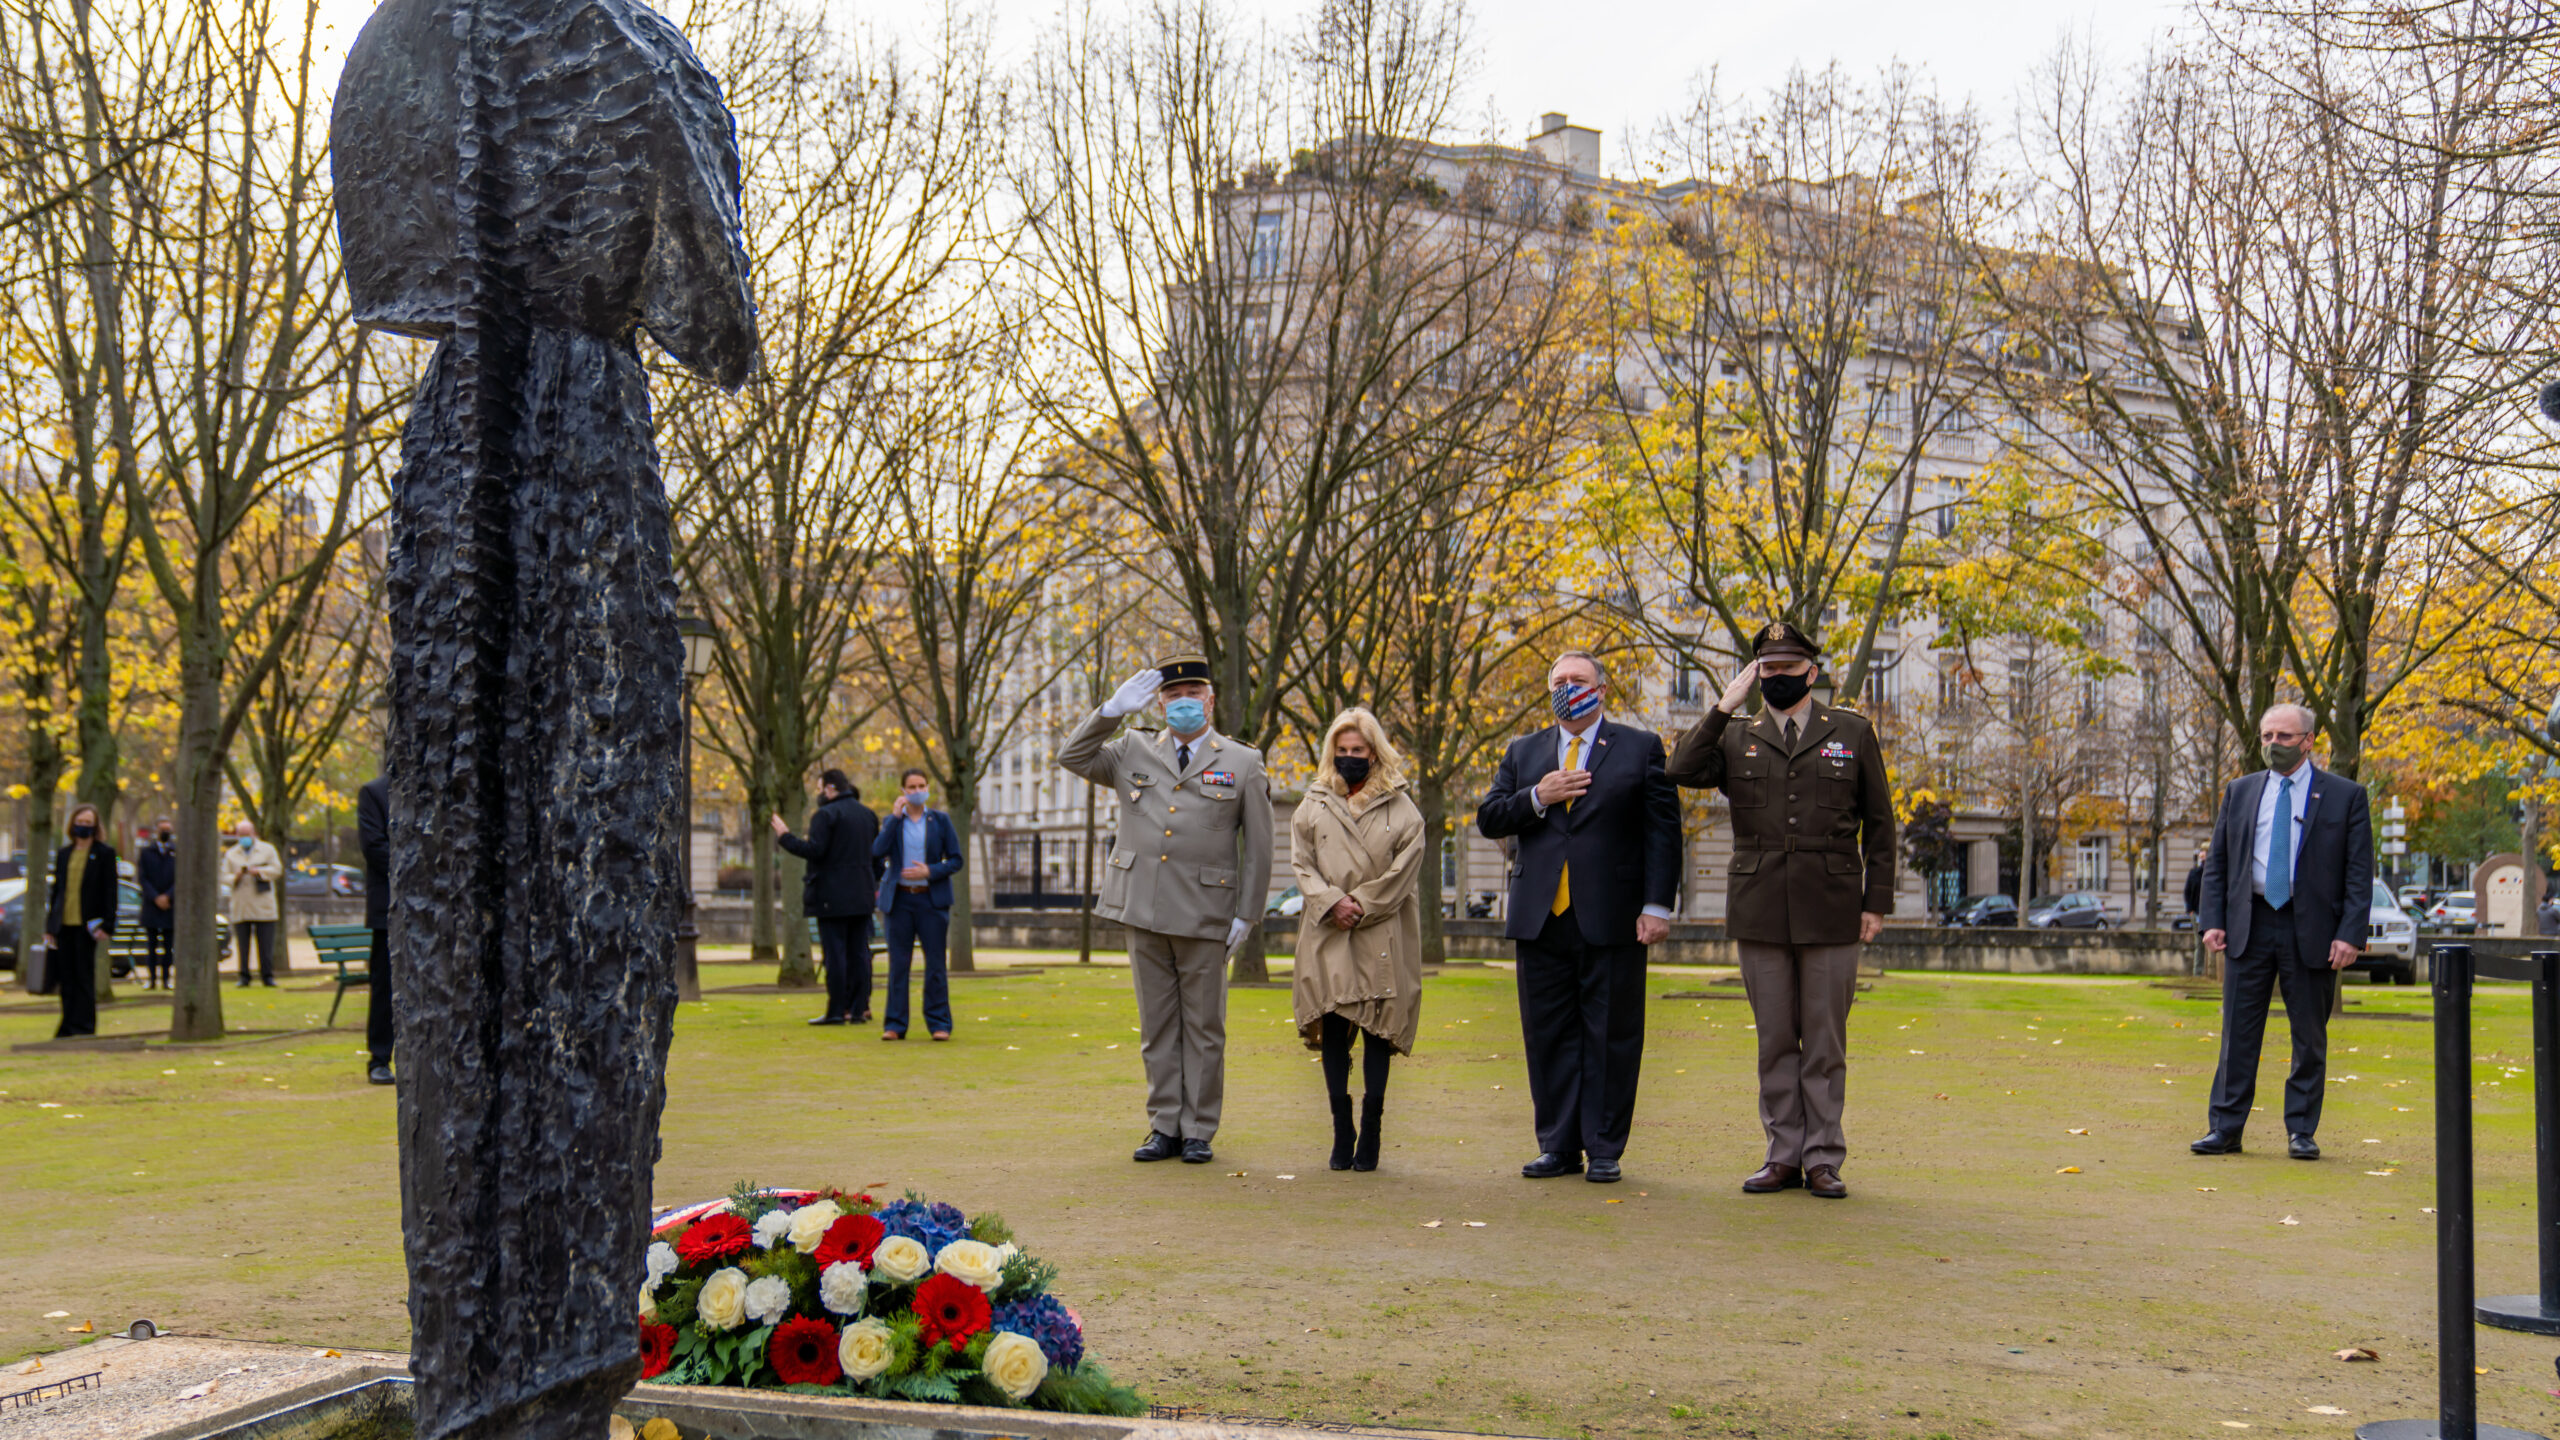 Secretary of State Michael R. Pompeo, with U.S. Ambassador to France Jamie McCourt, lays a wreath in remembrance of the victims of France's recent terrorist attacks in Paris, France.